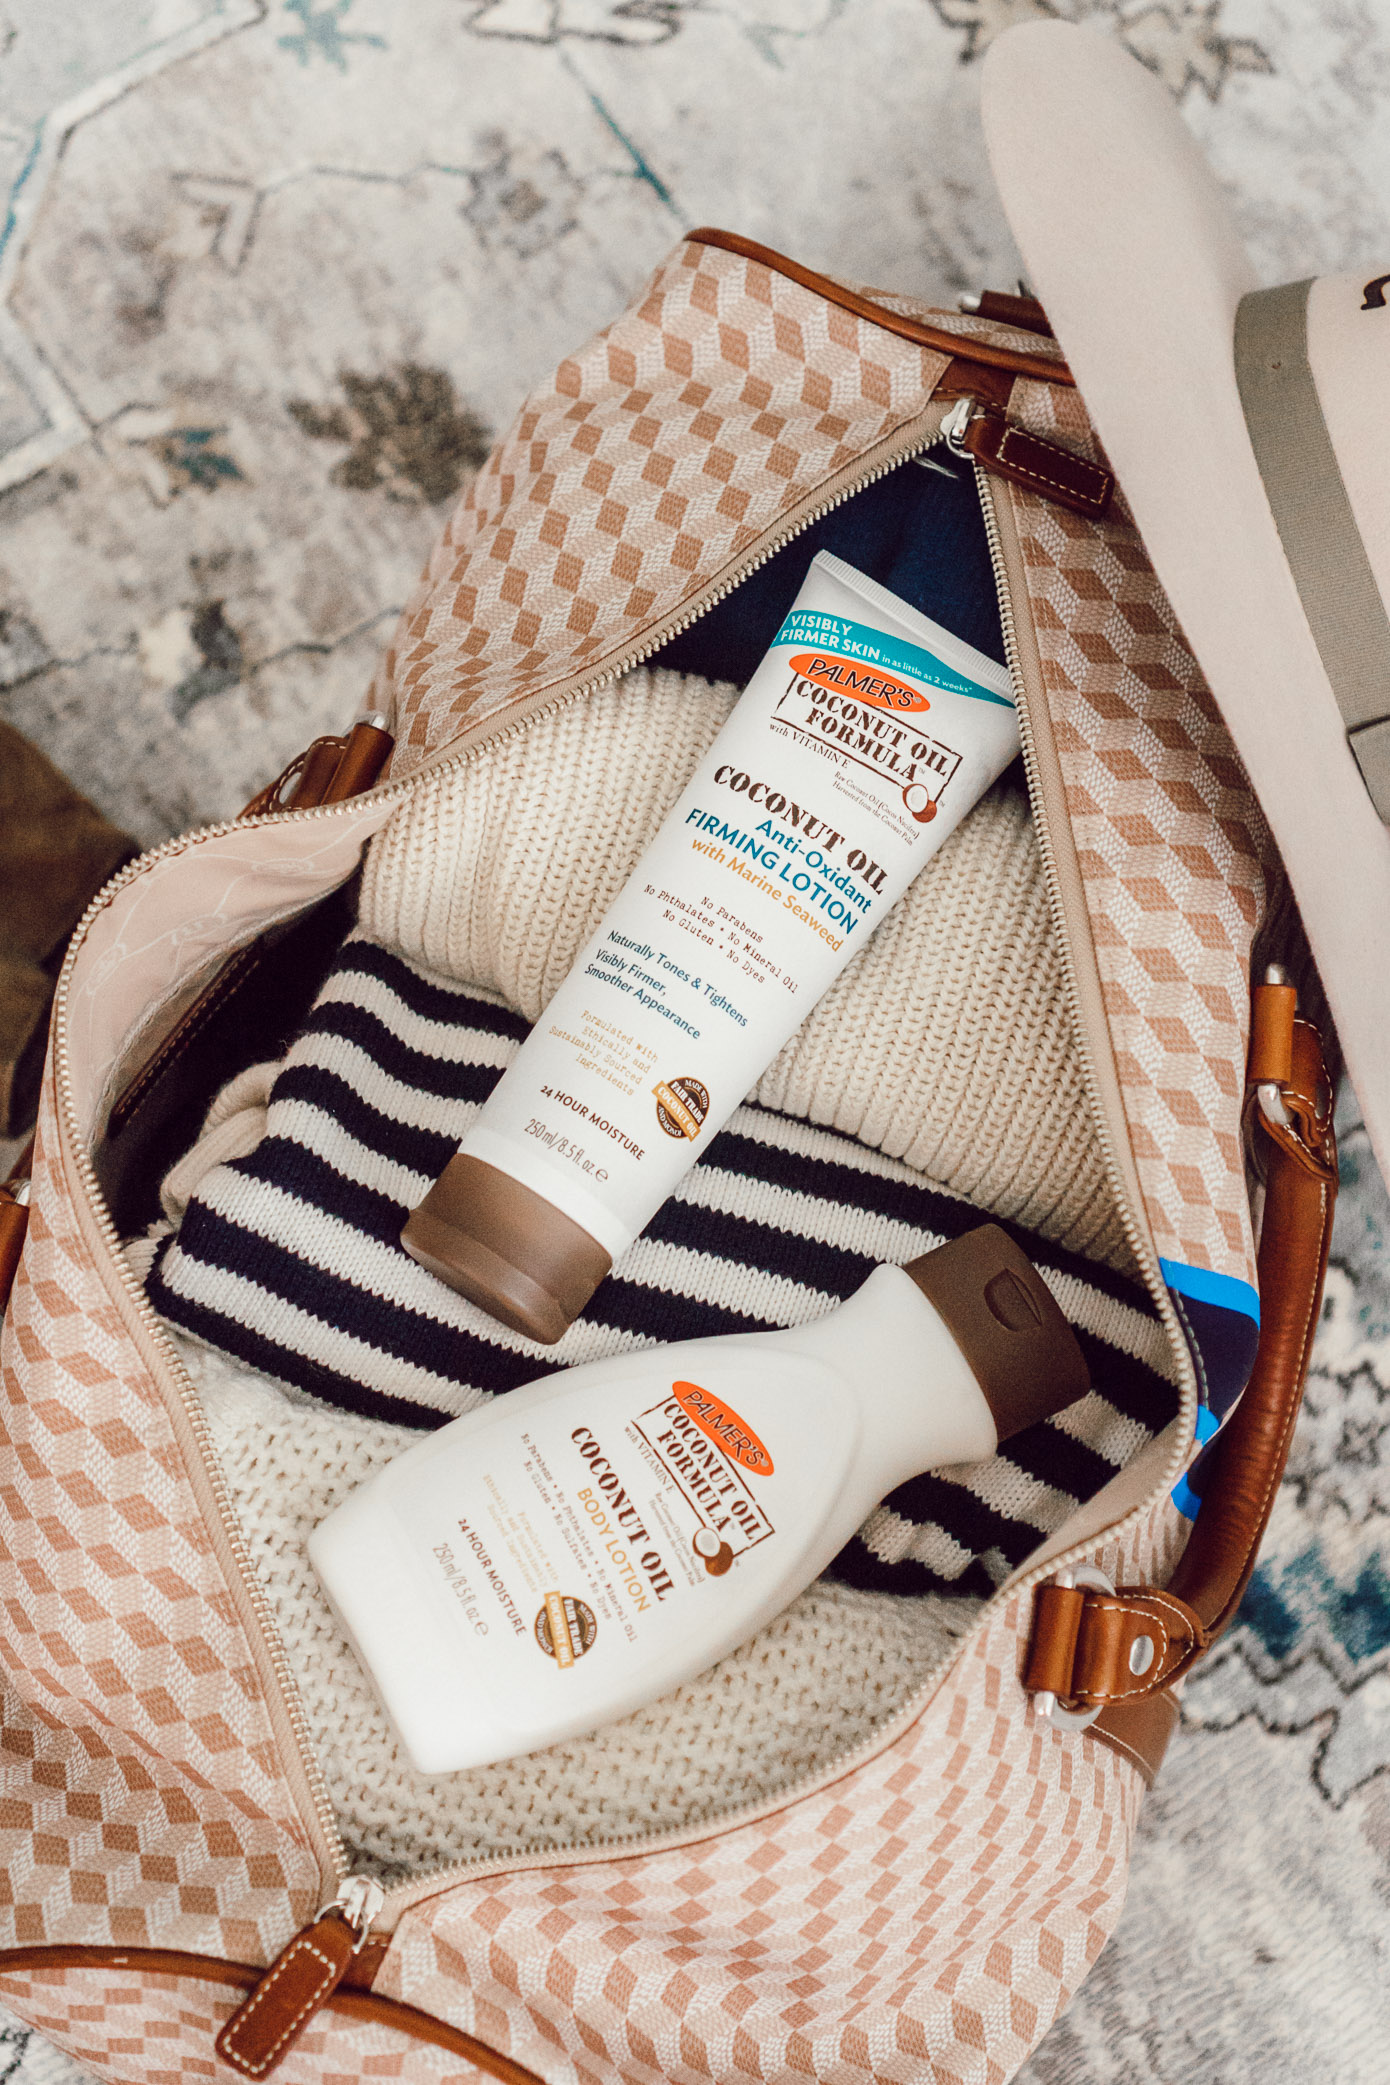 Coconut Oil Skincare | Five Ways to Hydrate Your Skin While Traveling featured on Louella Reese